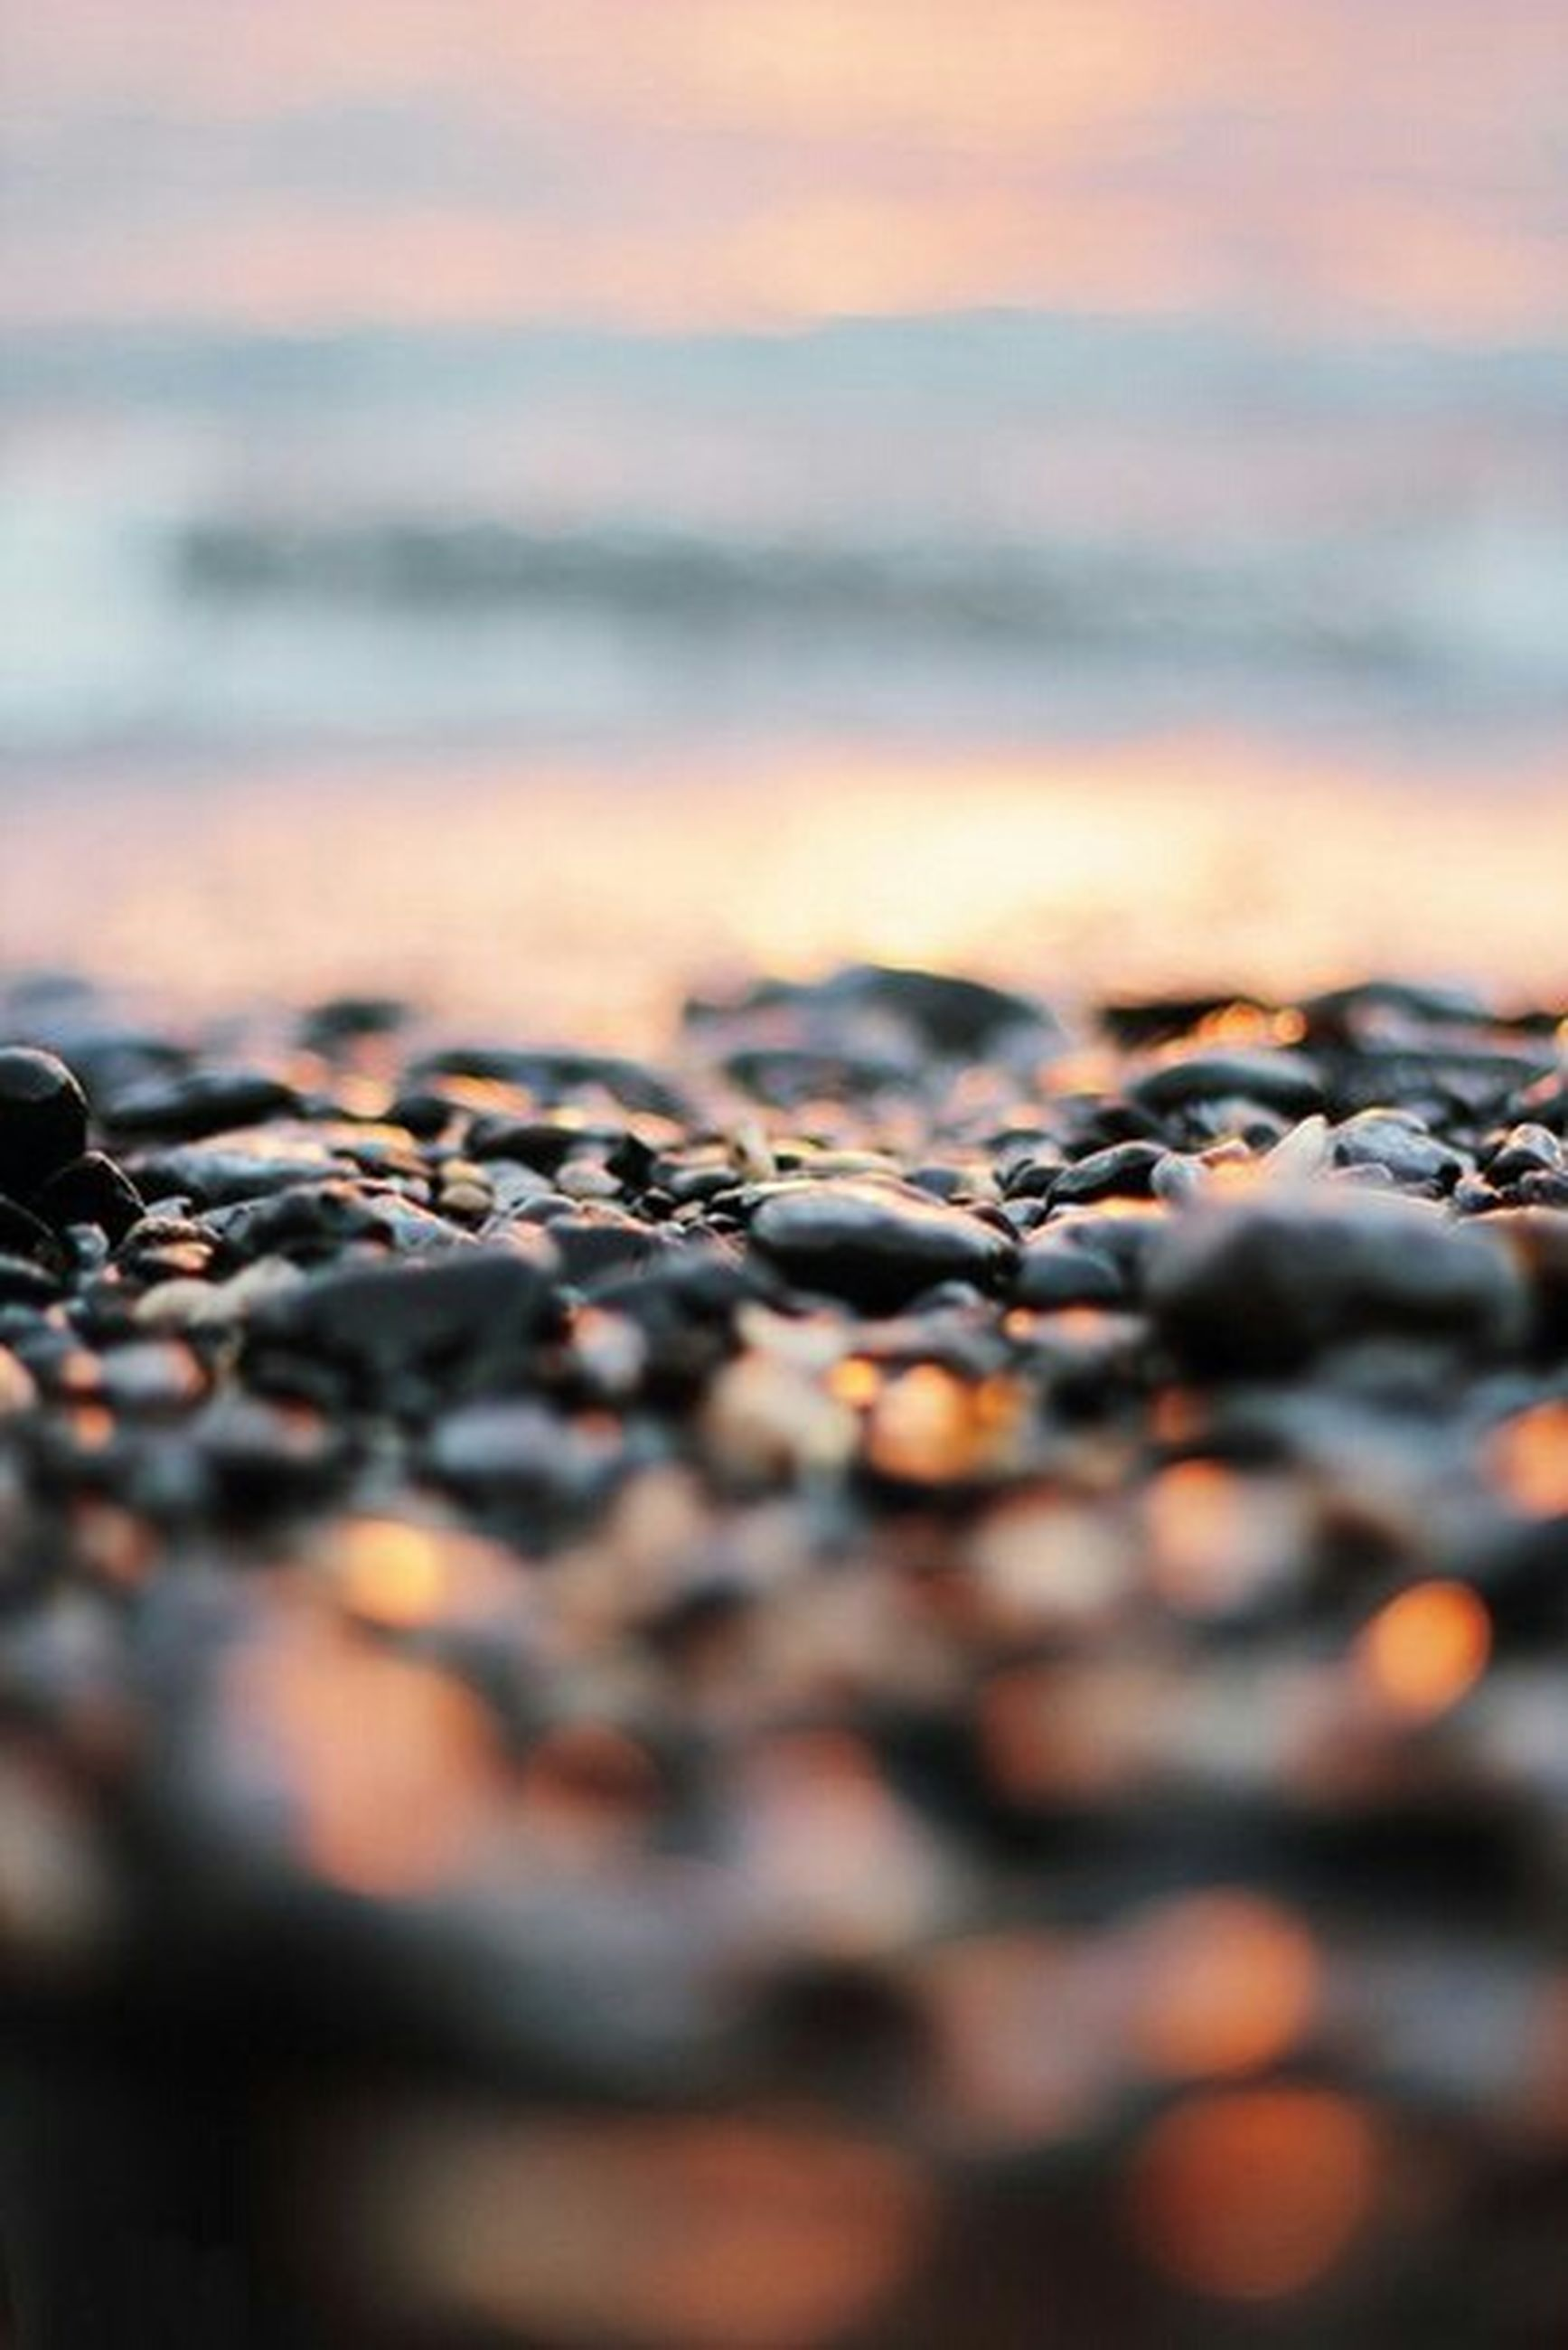 selective focus, sunset, sky, surface level, focus on foreground, close-up, nature, tranquility, beauty in nature, beach, scenics, cloud - sky, tranquil scene, outdoors, stone - object, pebble, no people, abundance, idyllic, orange color